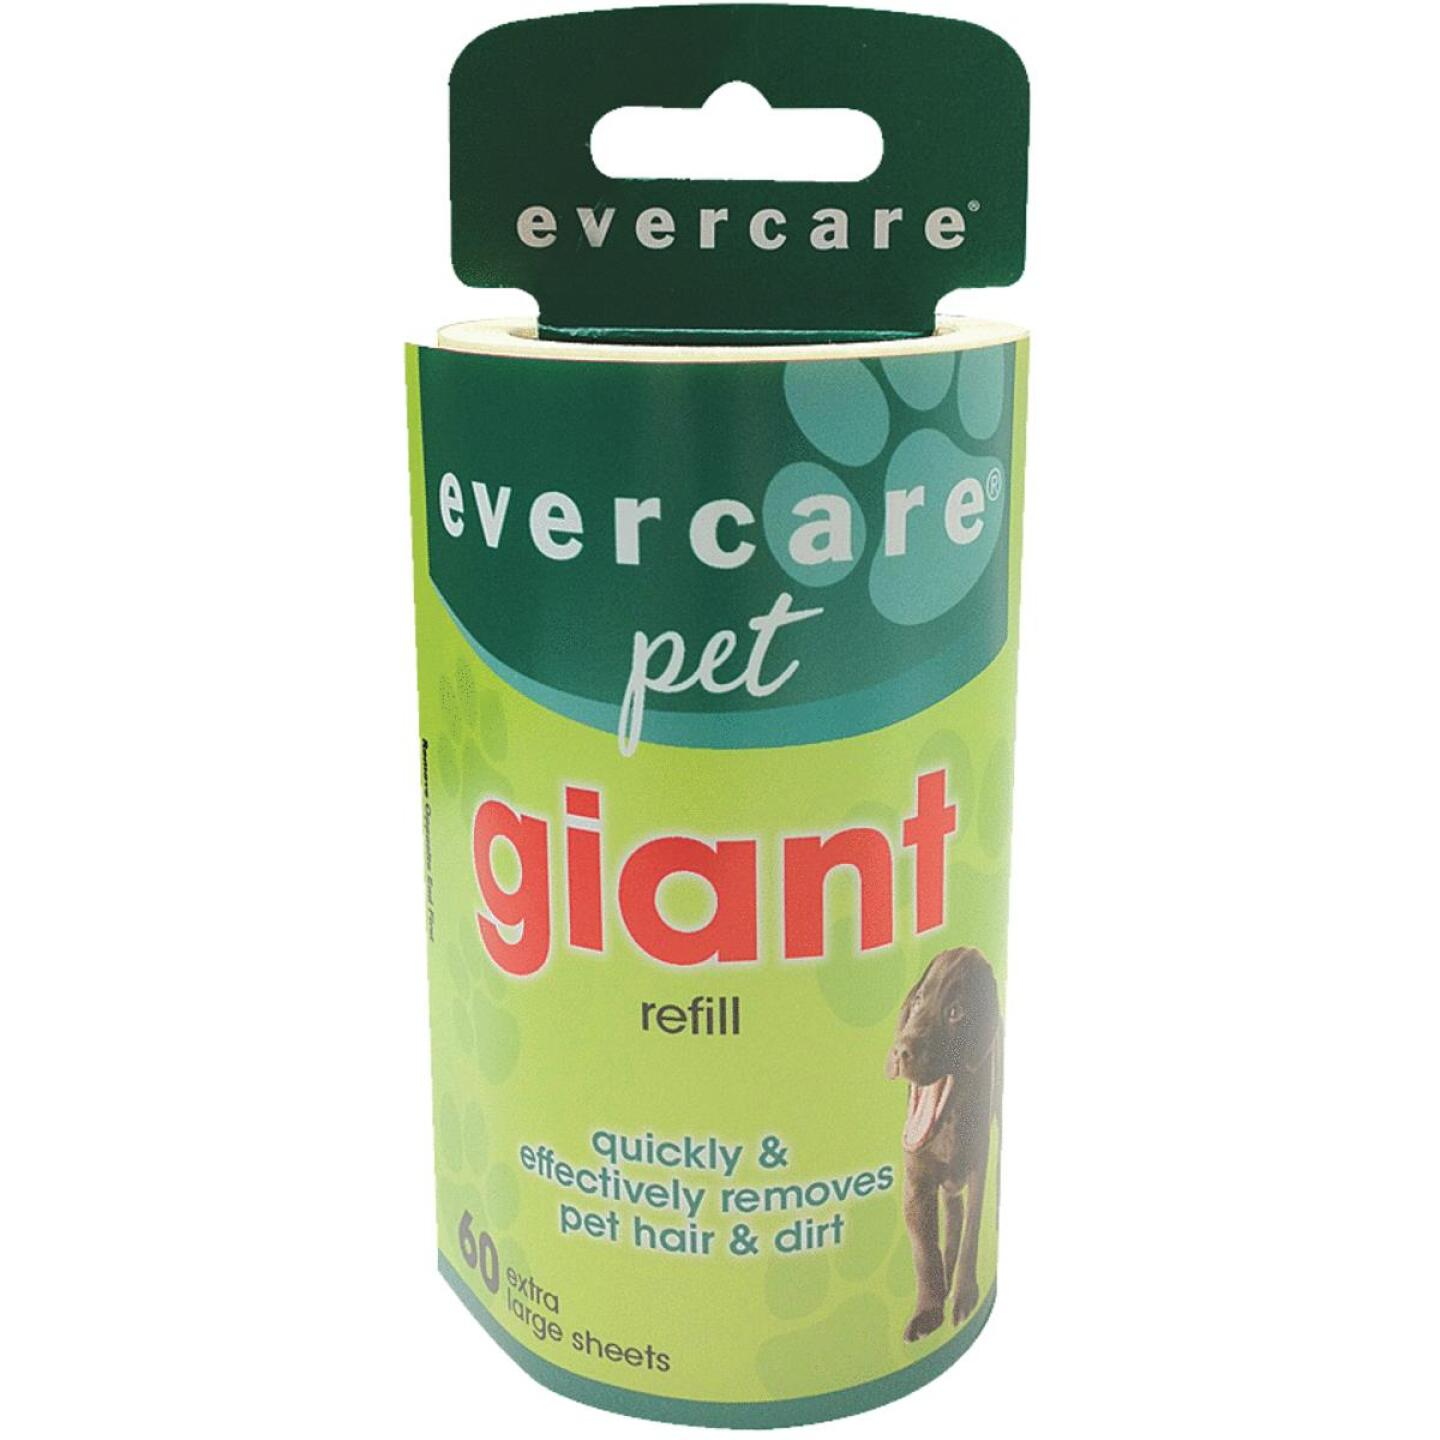 Evercare Pet 36.4 Ft. x 4.6 In. Giant Refill Roll Pet Hair Remover Image 1